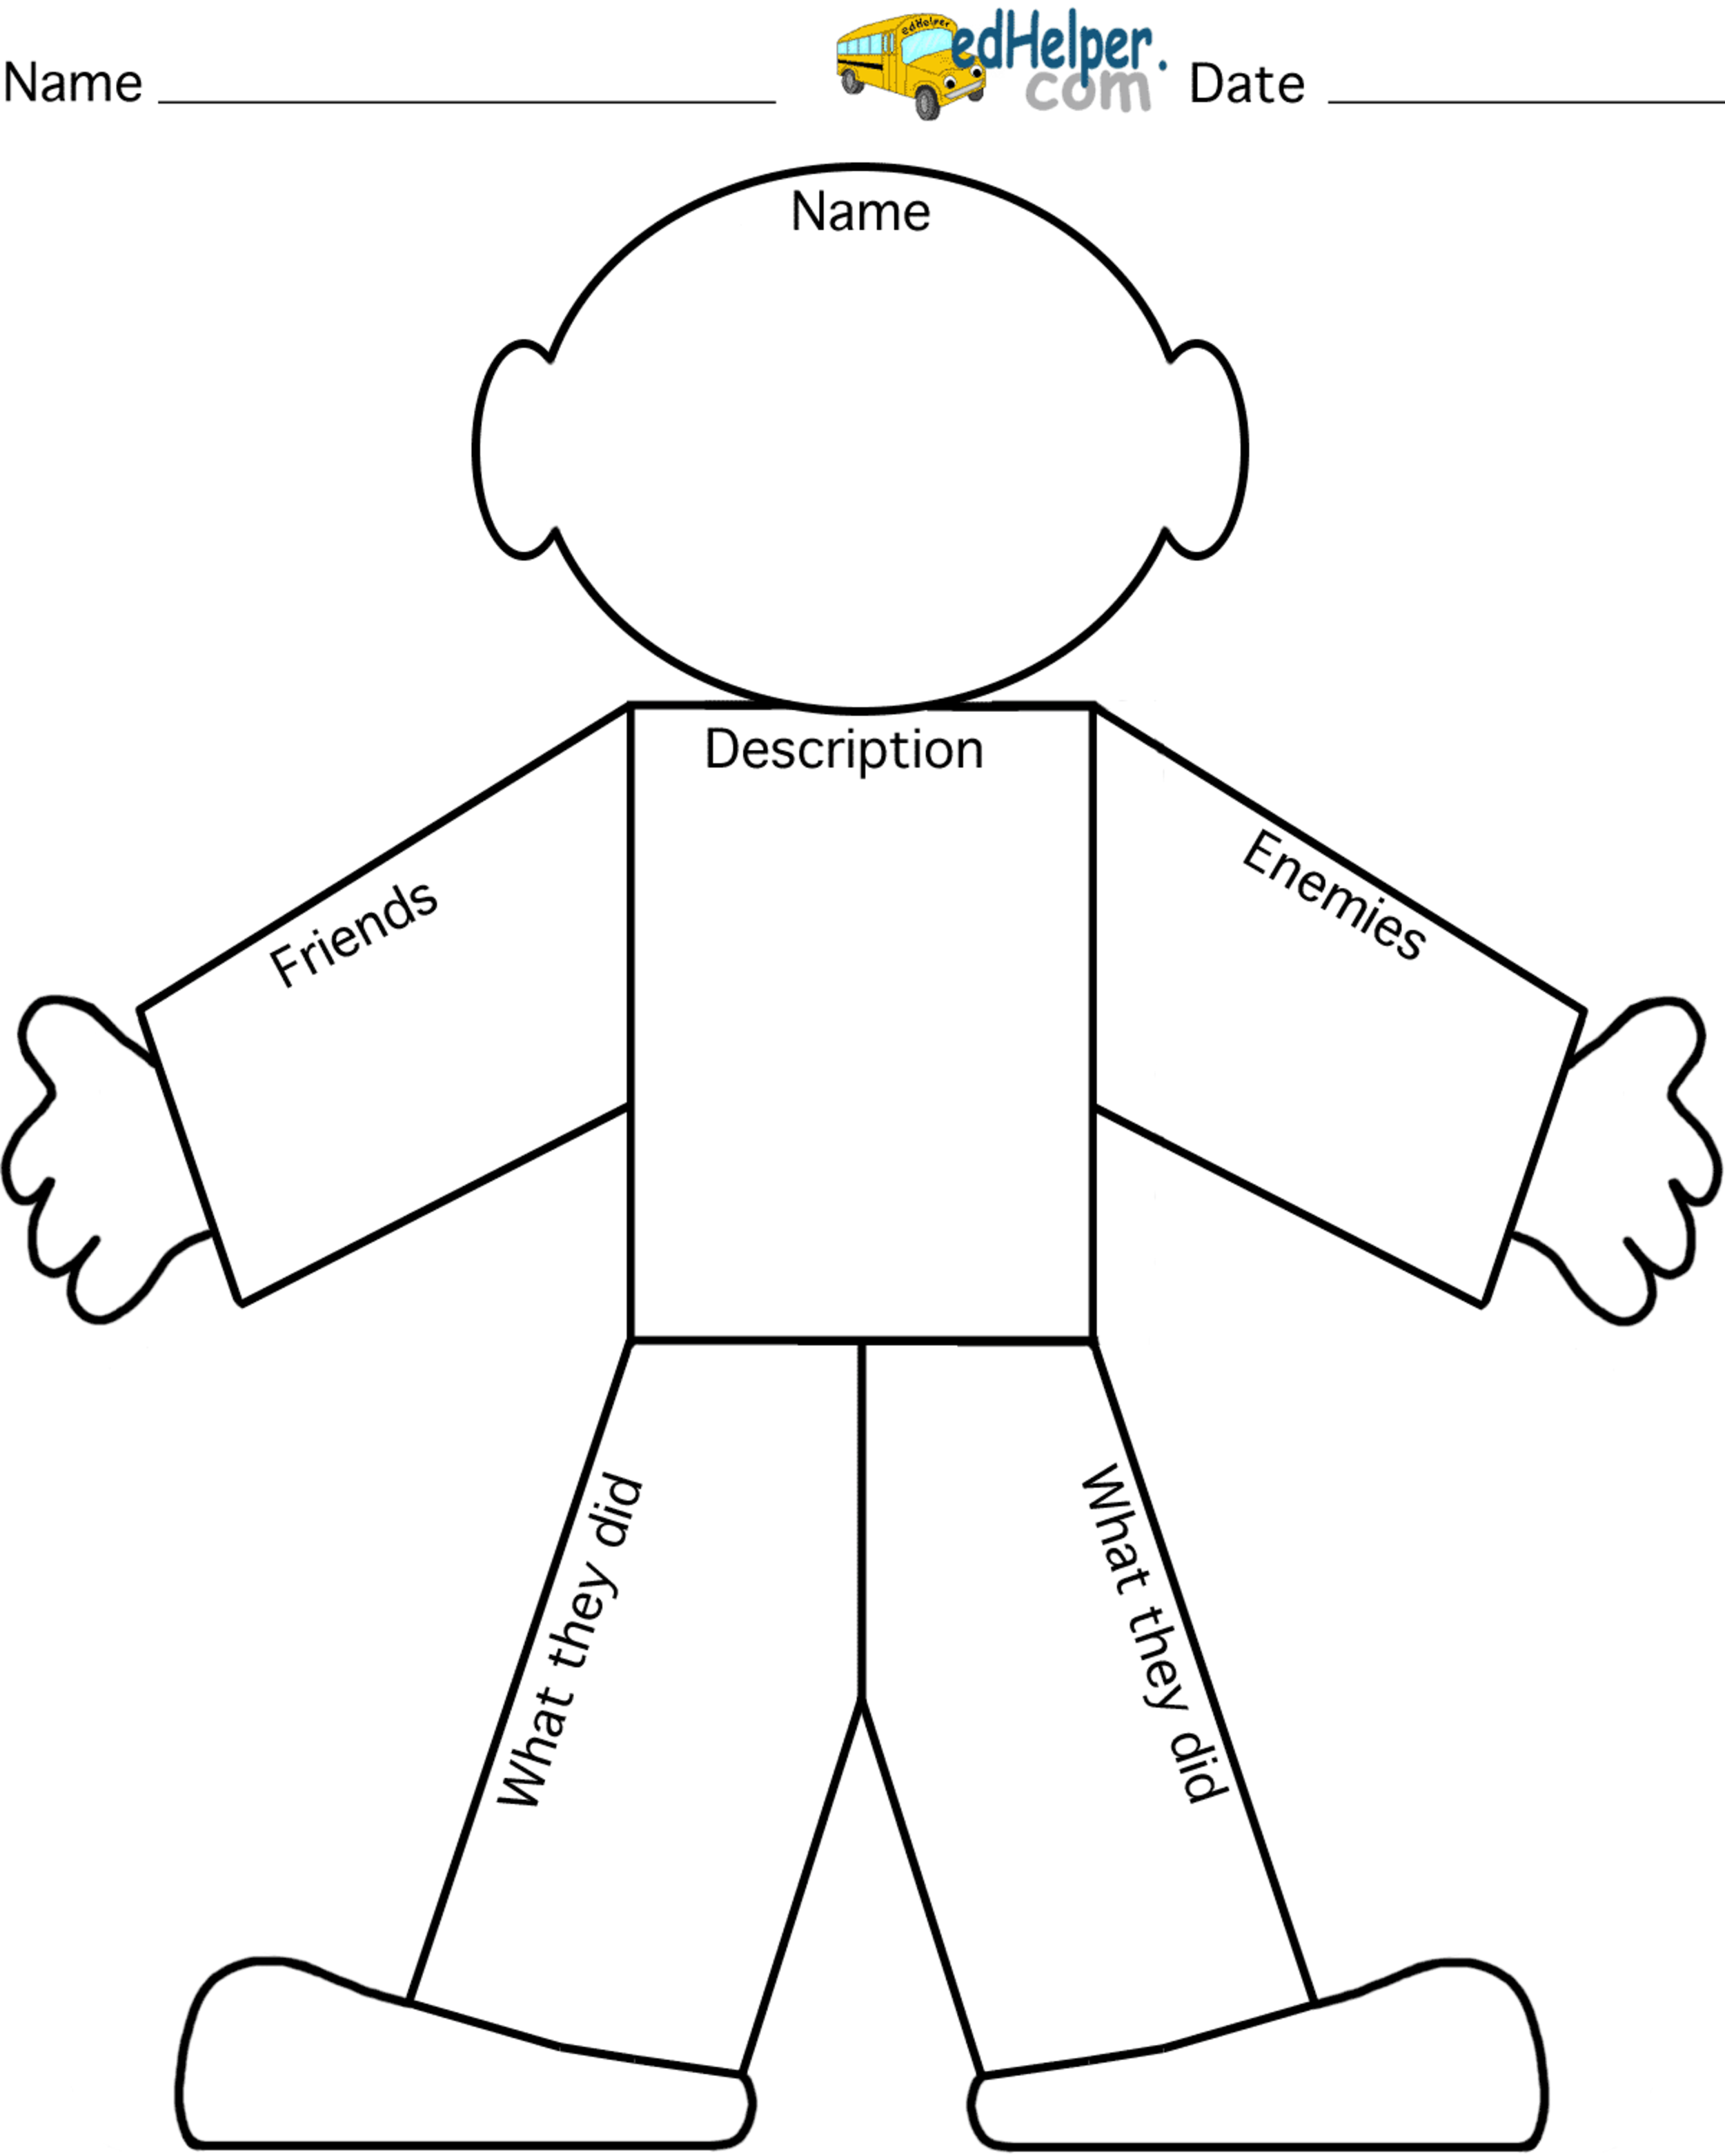 graphic organizers for character | describe a character graphic